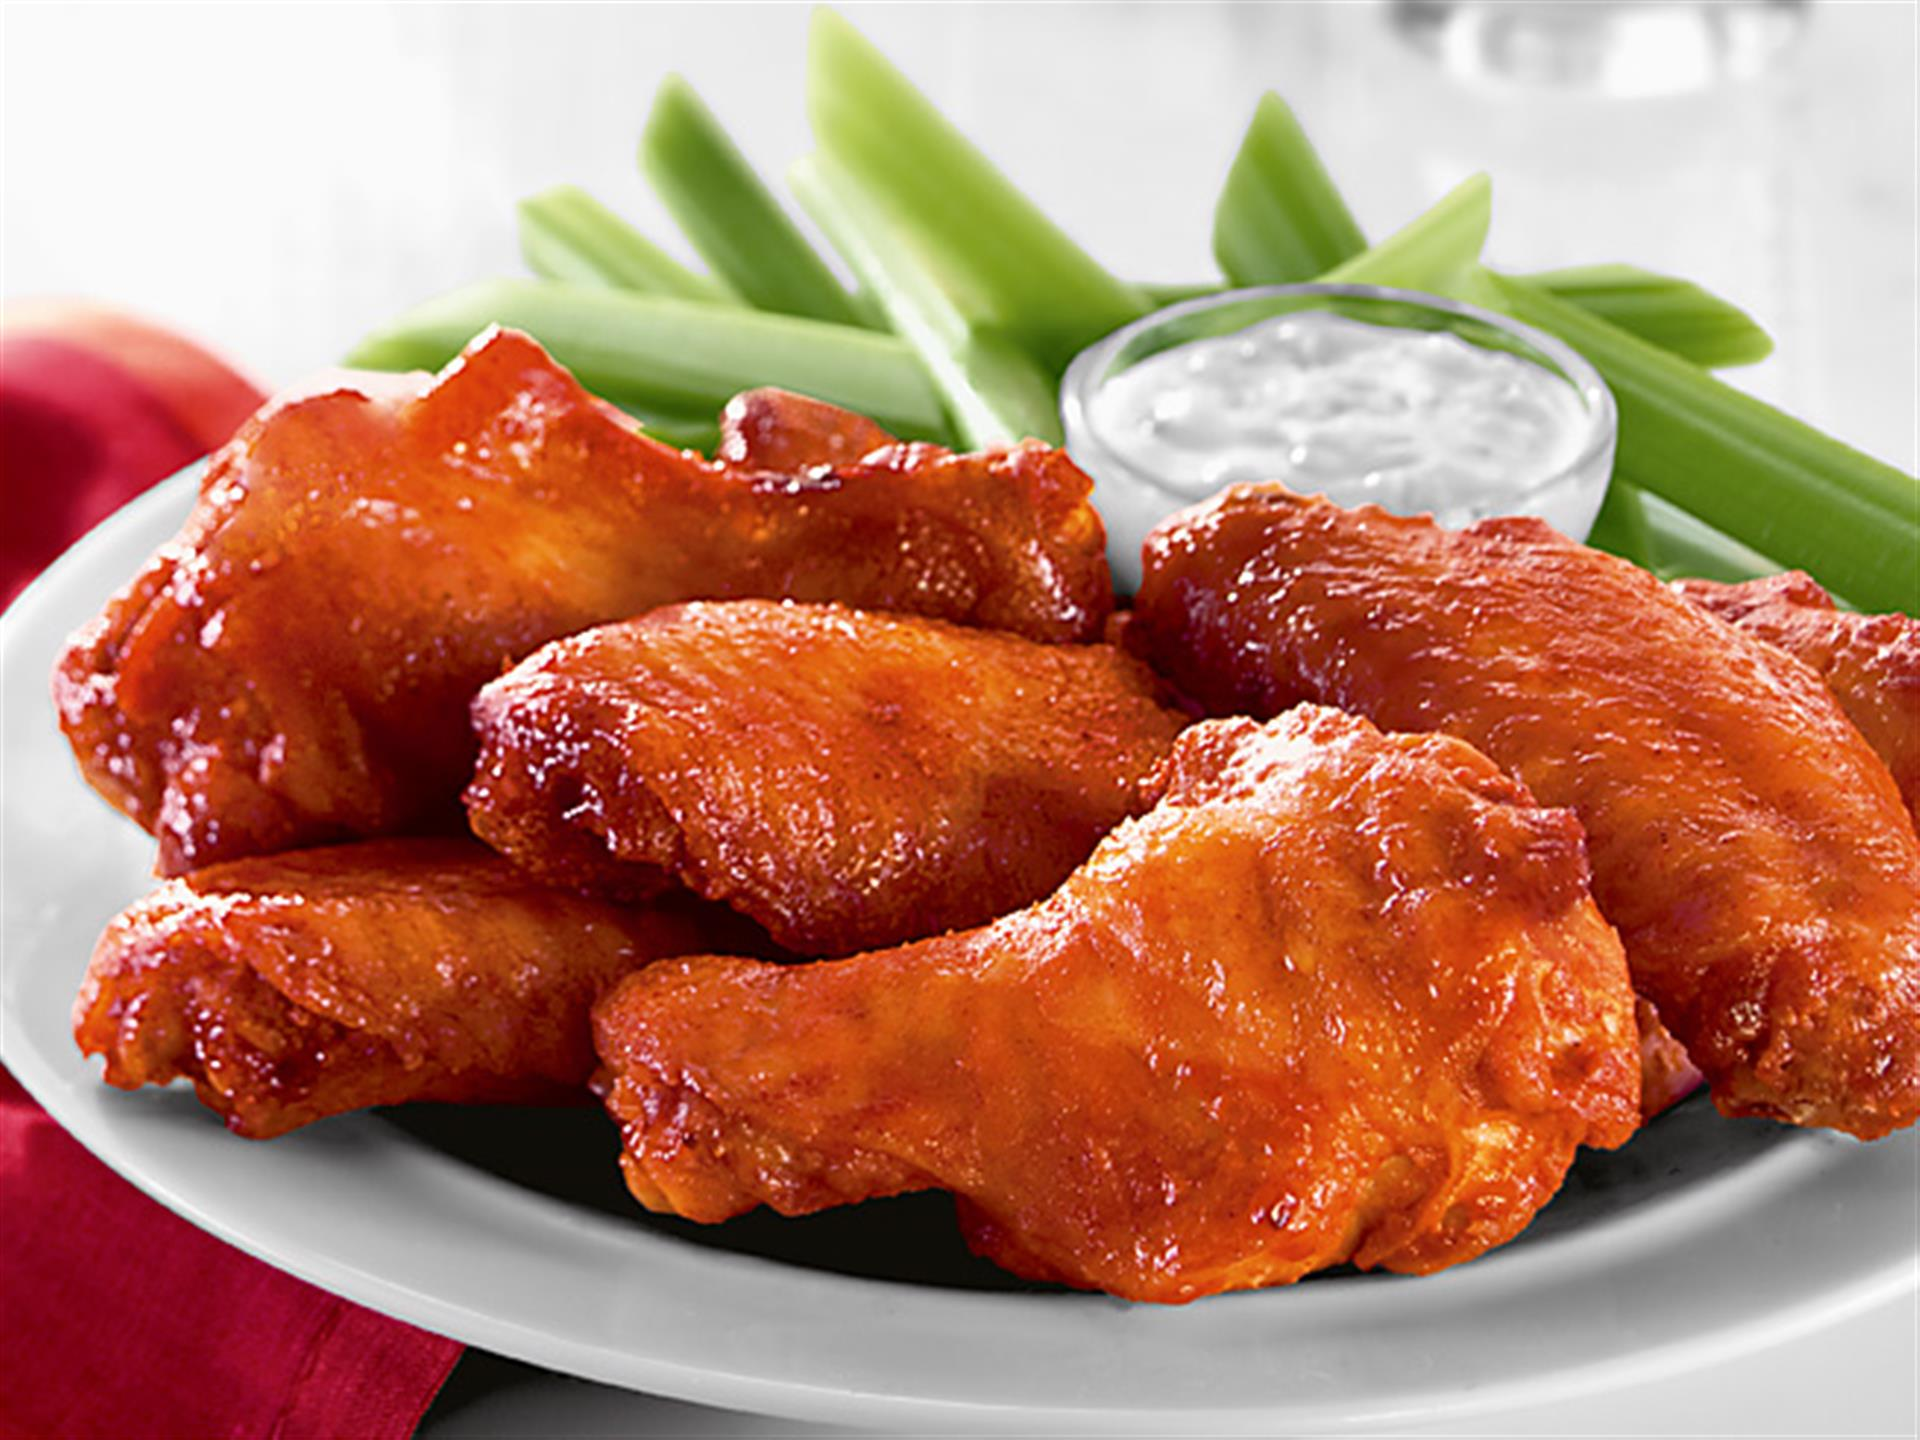 buffalo chicken wings with celery and dipping sauce